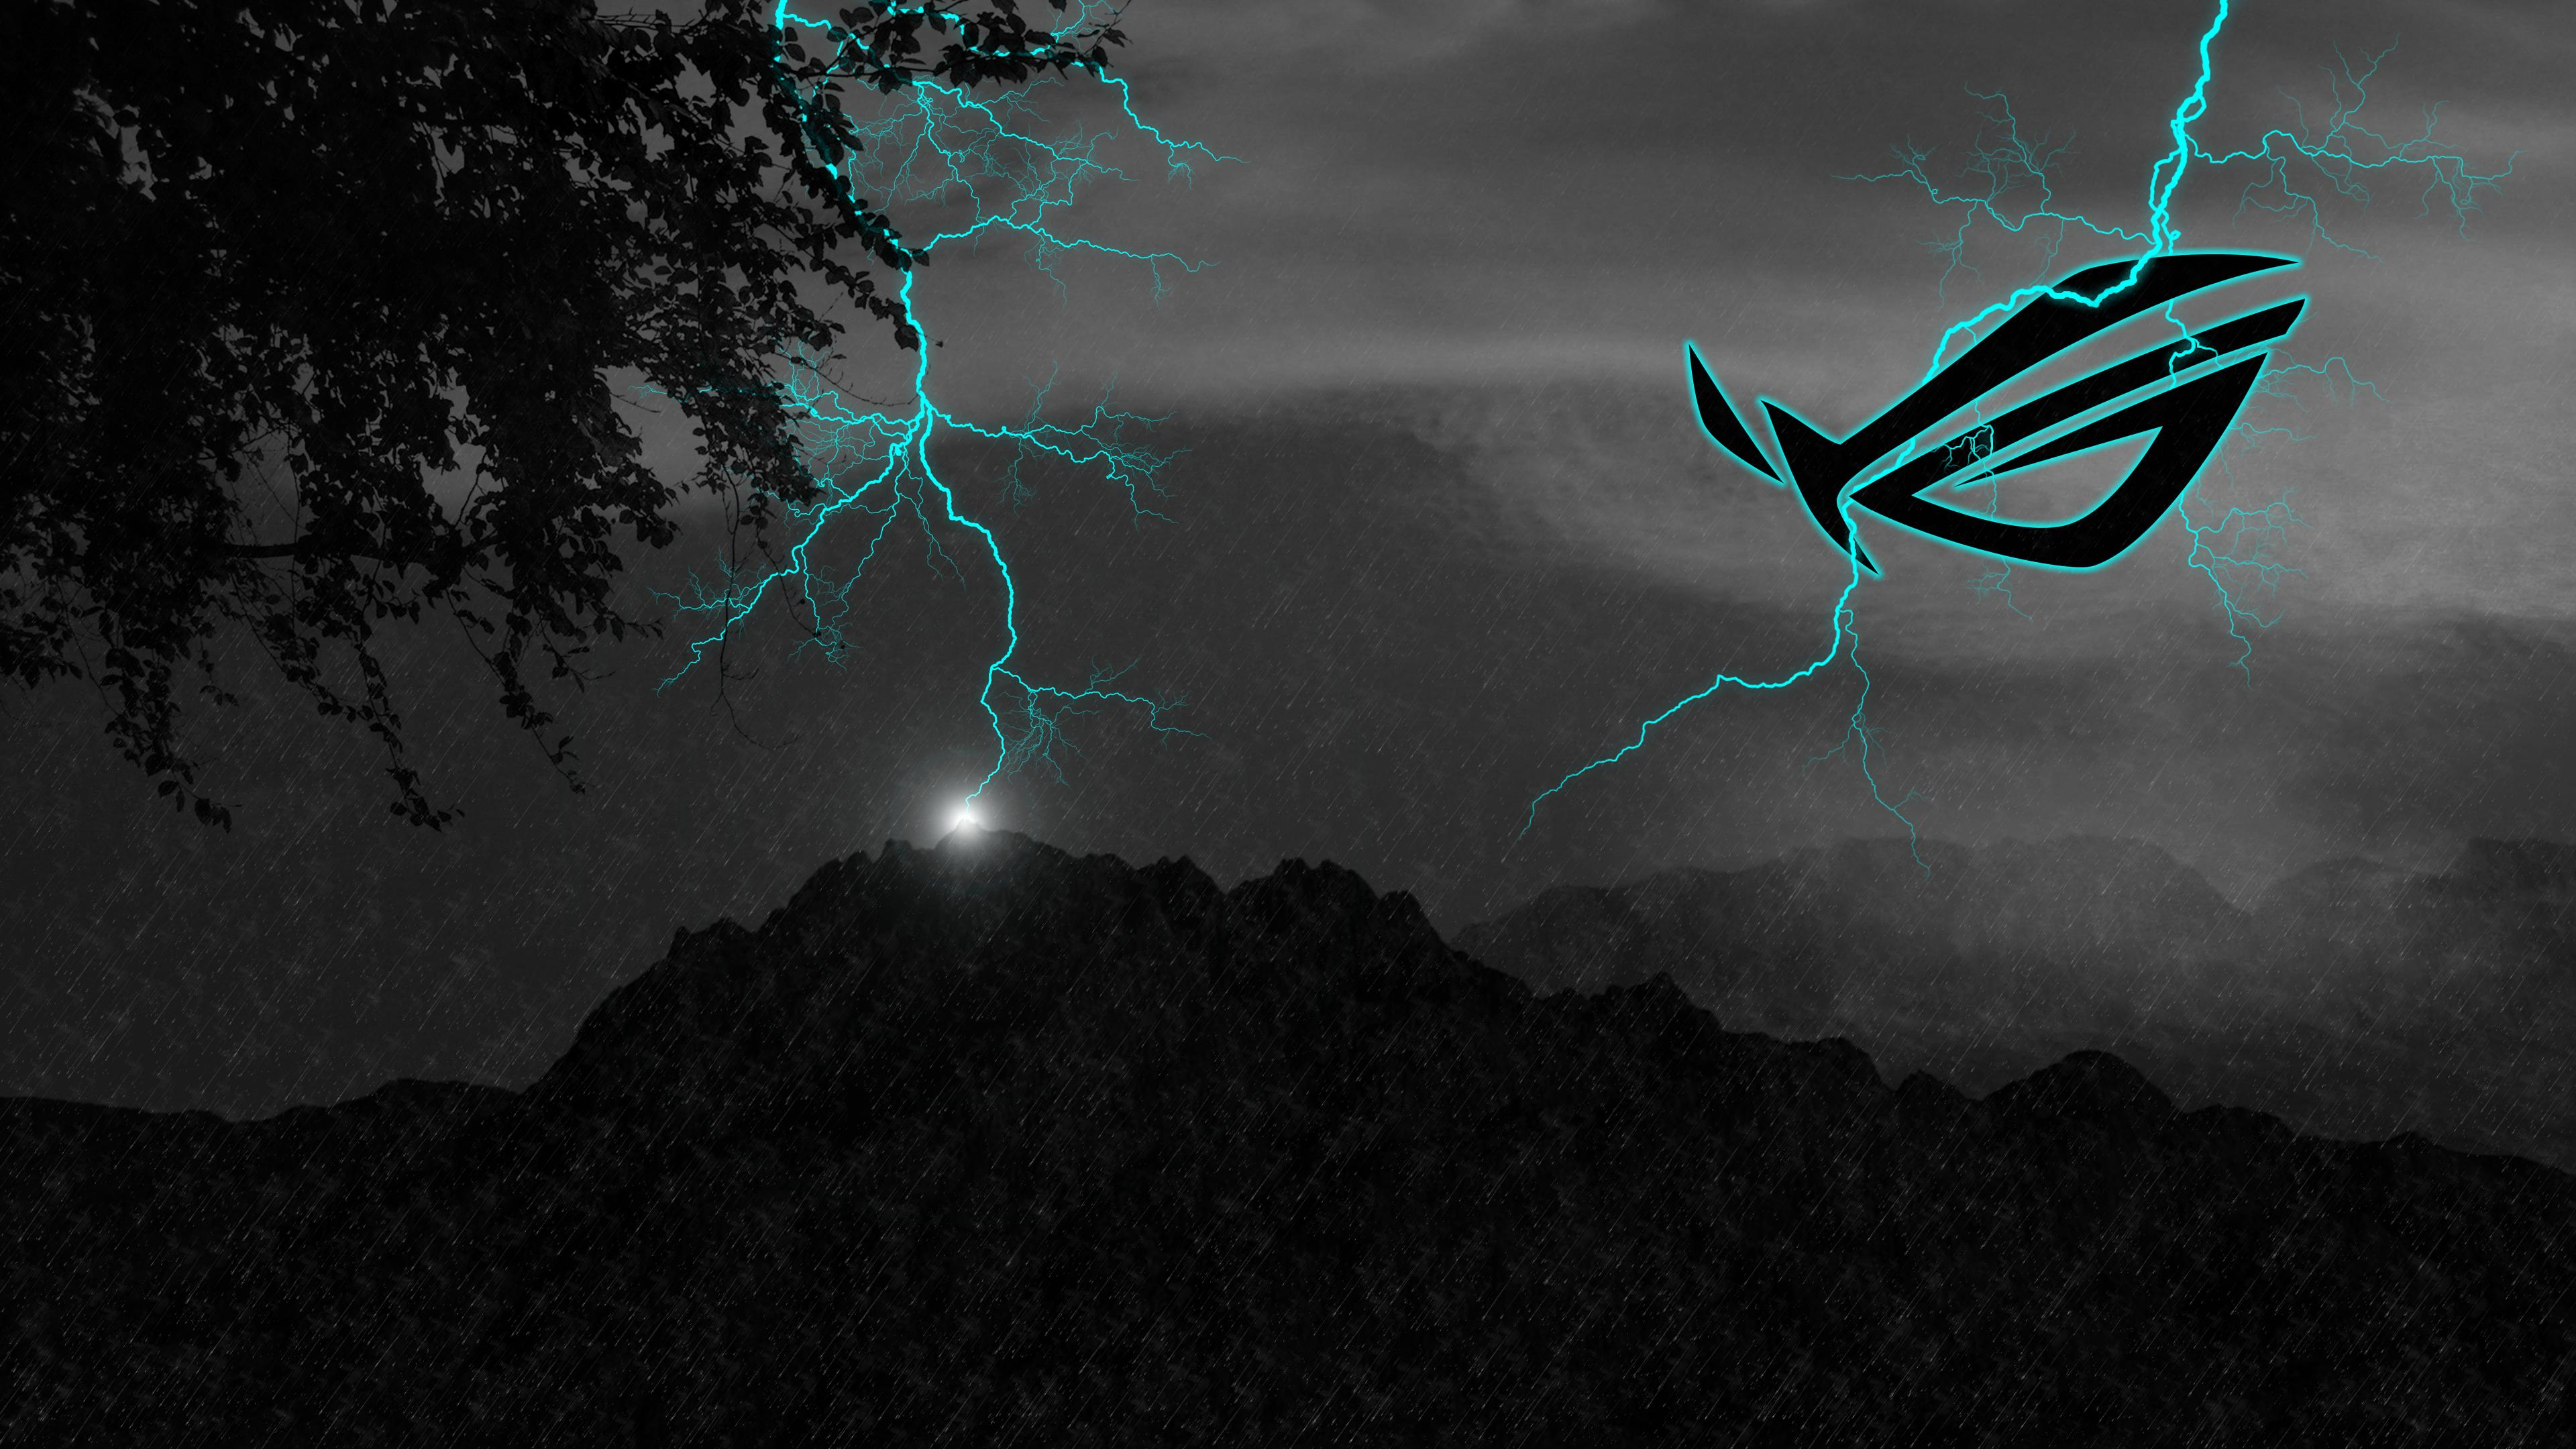 Asus Wallpapers Widescreen: ASUS Wallpapers Collection